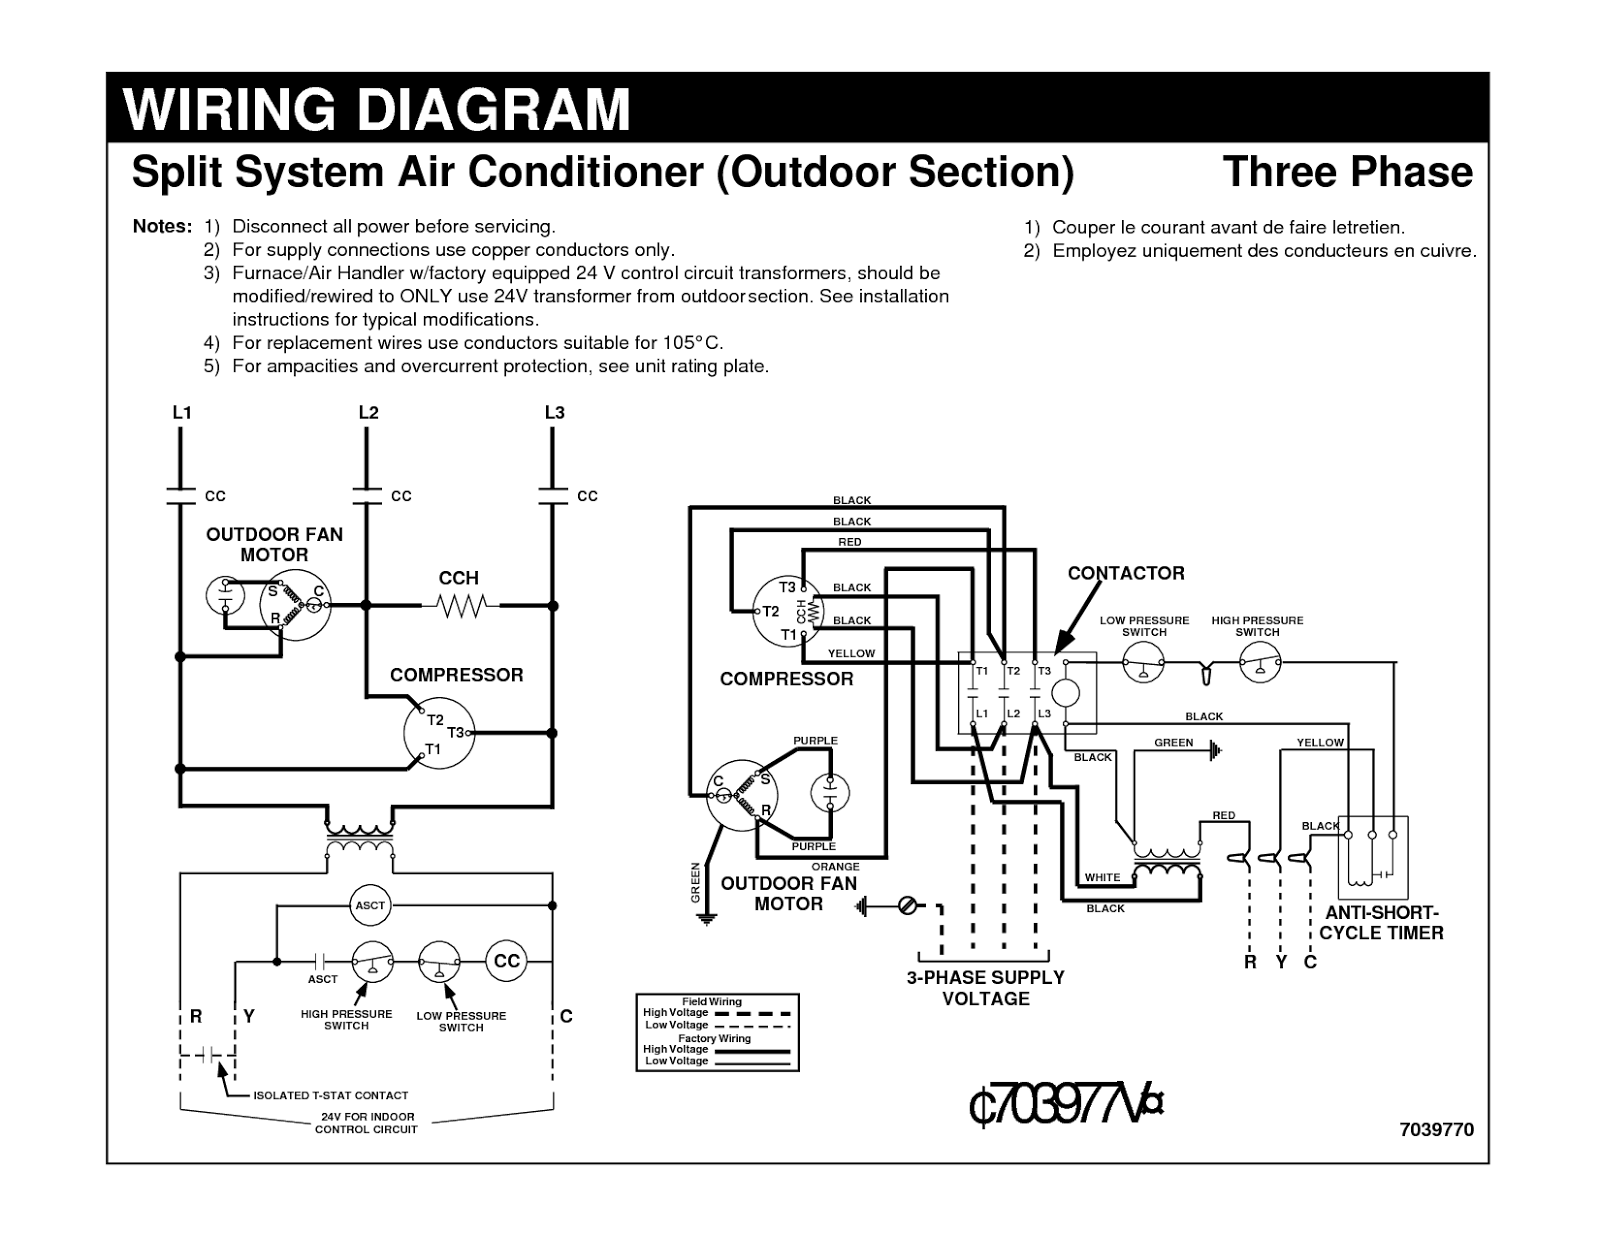 wiring+diagram+in+the+user+manual red dot air conditioner wiring diagram air handler wiring diagram york rooftop unit wiring diagram at creativeand.co